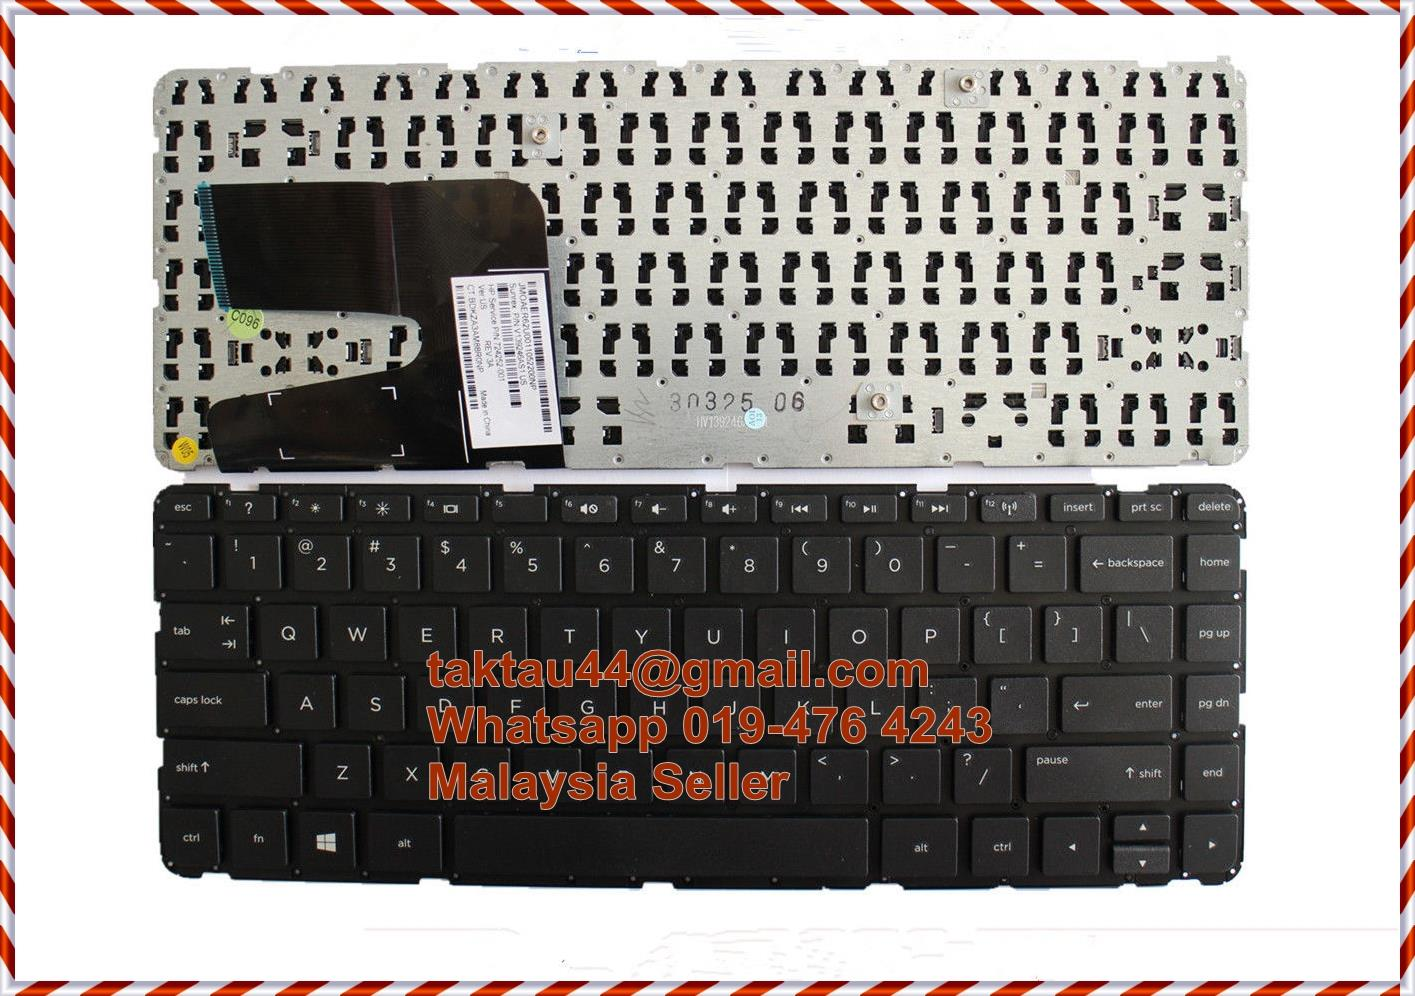 HP Laptop 248 G1 340 G1 345 G2 14-a 14-N 14-E 14-d G14-a000 keyboard